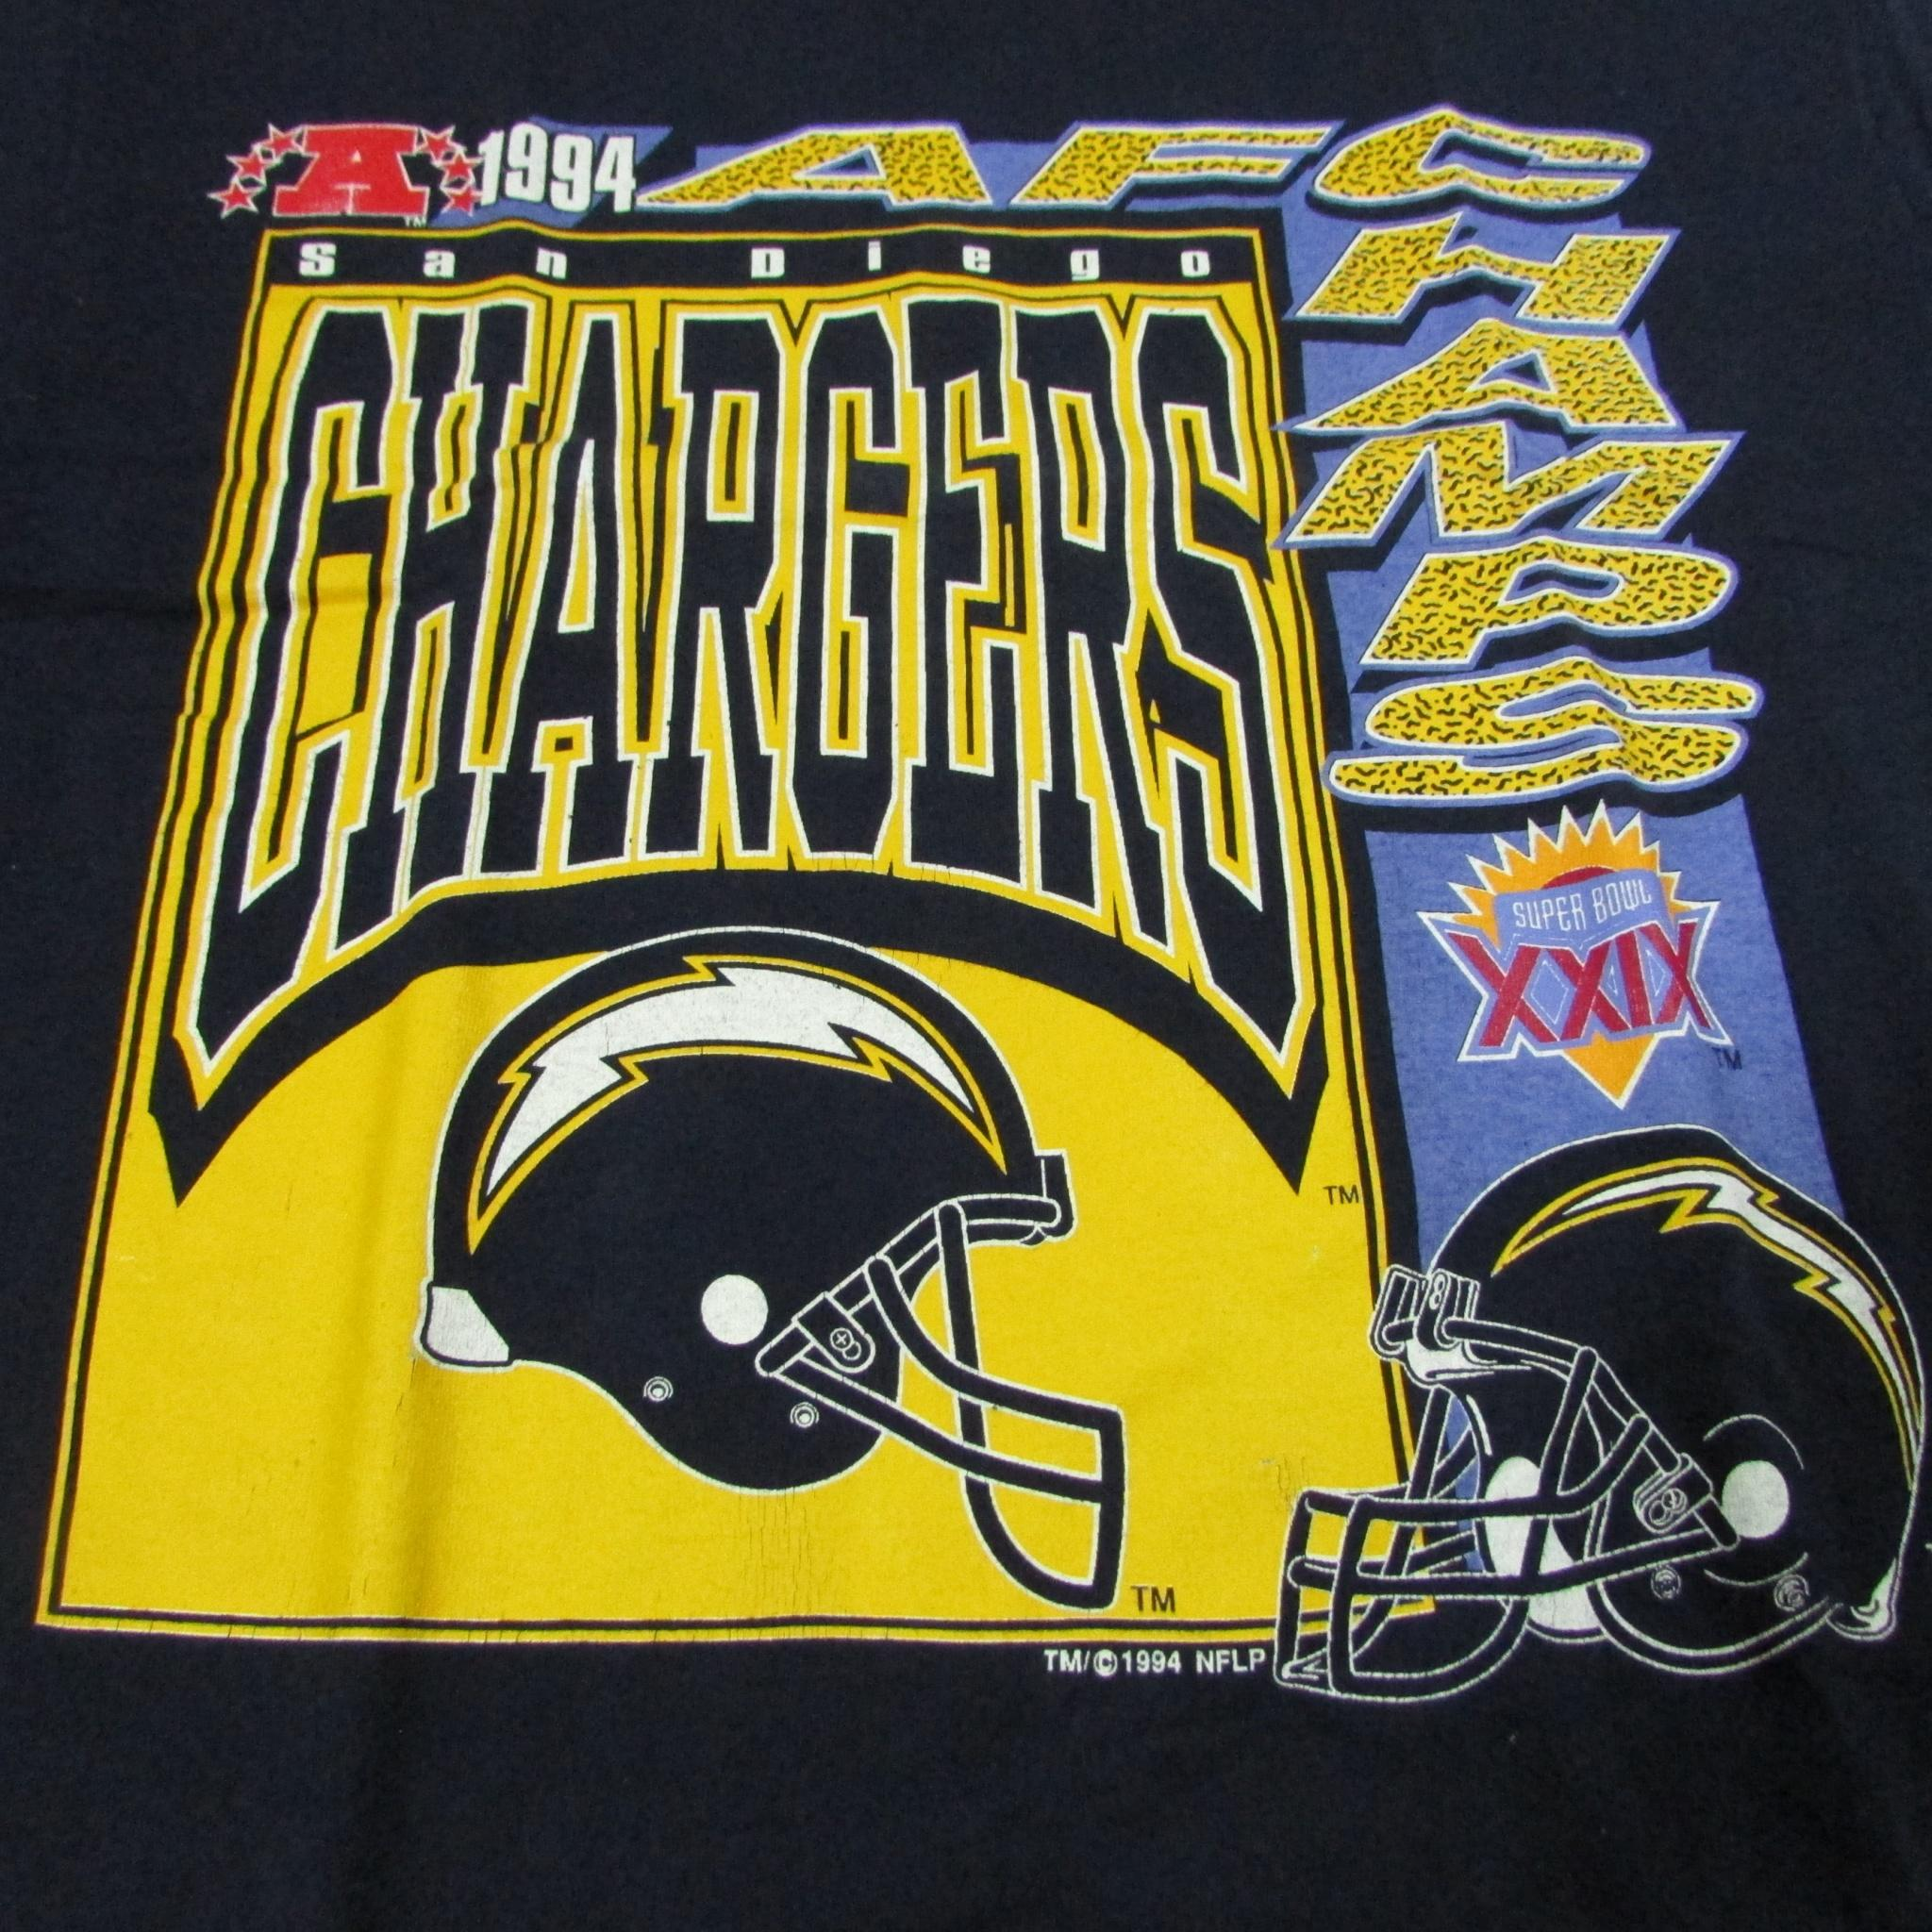 San Diego Chargers 94 AFC Champions Super Bowl Vintage Football T-Shirt Sz L